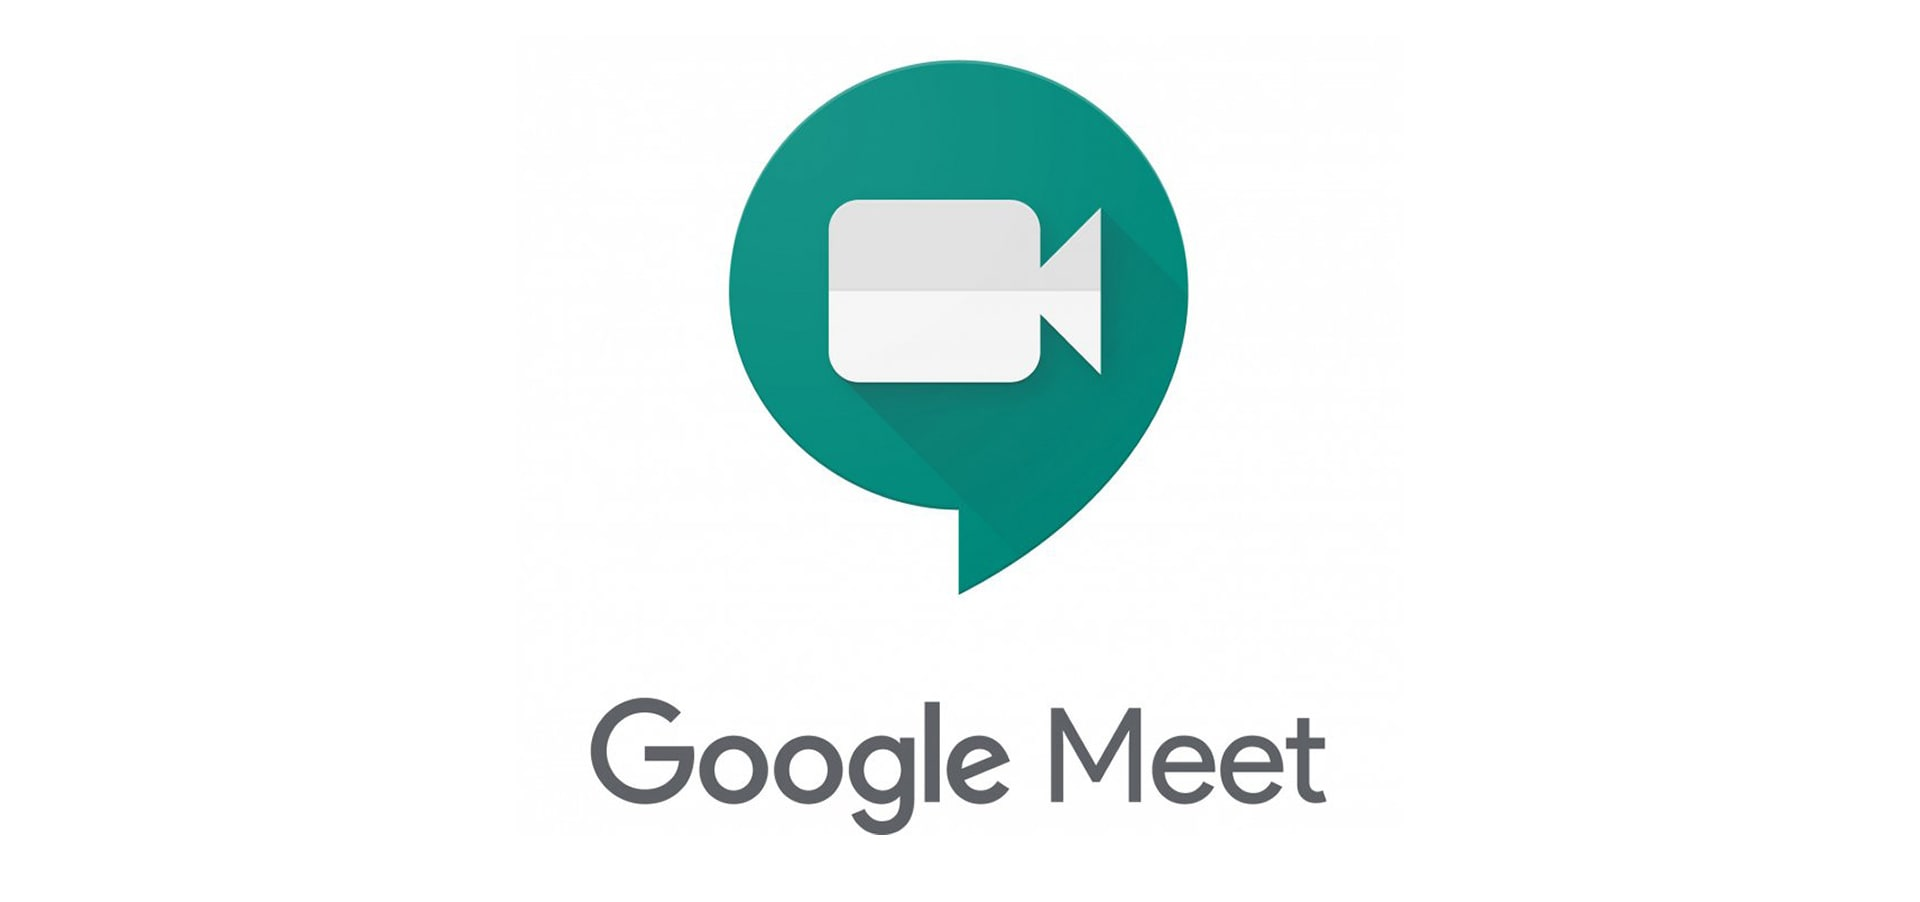 Much like Messenger, Google Meet upped its repertoire to keep up with other video calling apps. The ever trustworthy Google Meet comes in at the 7th spot.